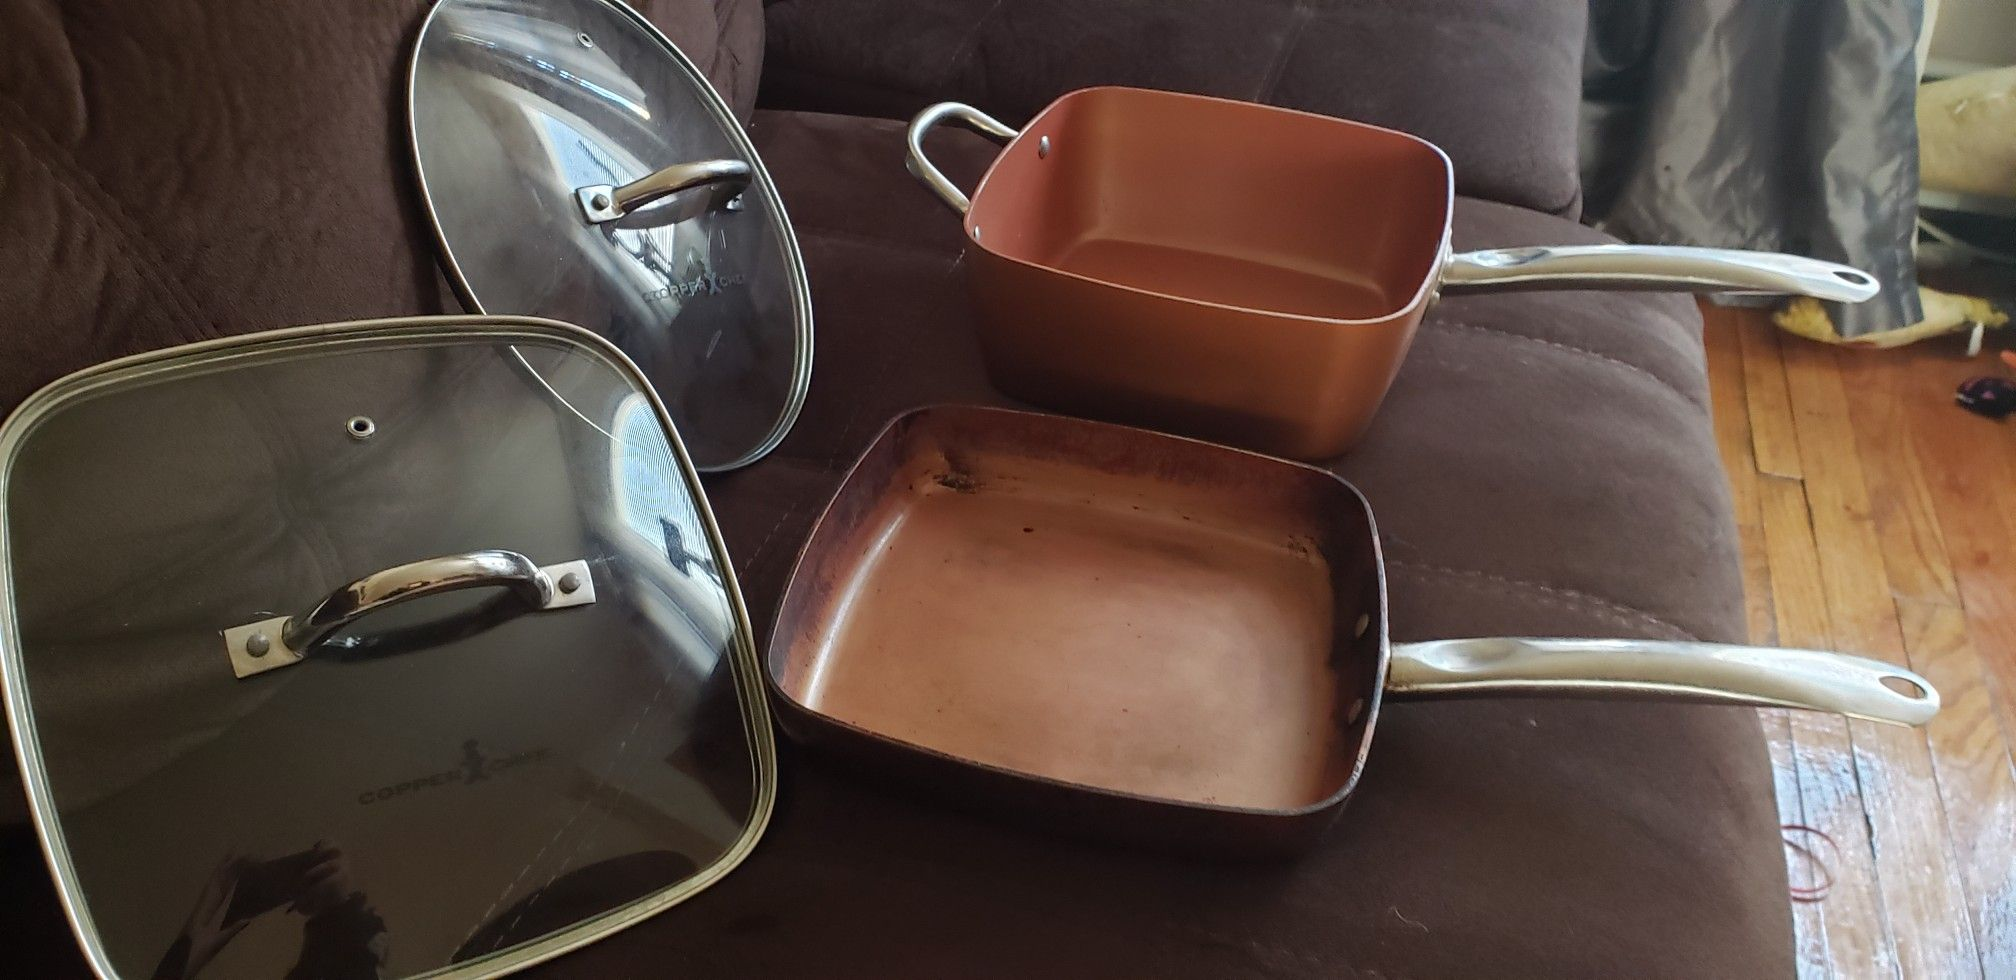 COPPER CHEF FRYING PAN ,DEEP SQUARE HOLDS 4.5 QUART PAN POT, 2 LIDS COOK OVER GAS, ELECTRIC I WOULD ALSO PUT THEM IN THE STOVE WITHOUT LIDS.